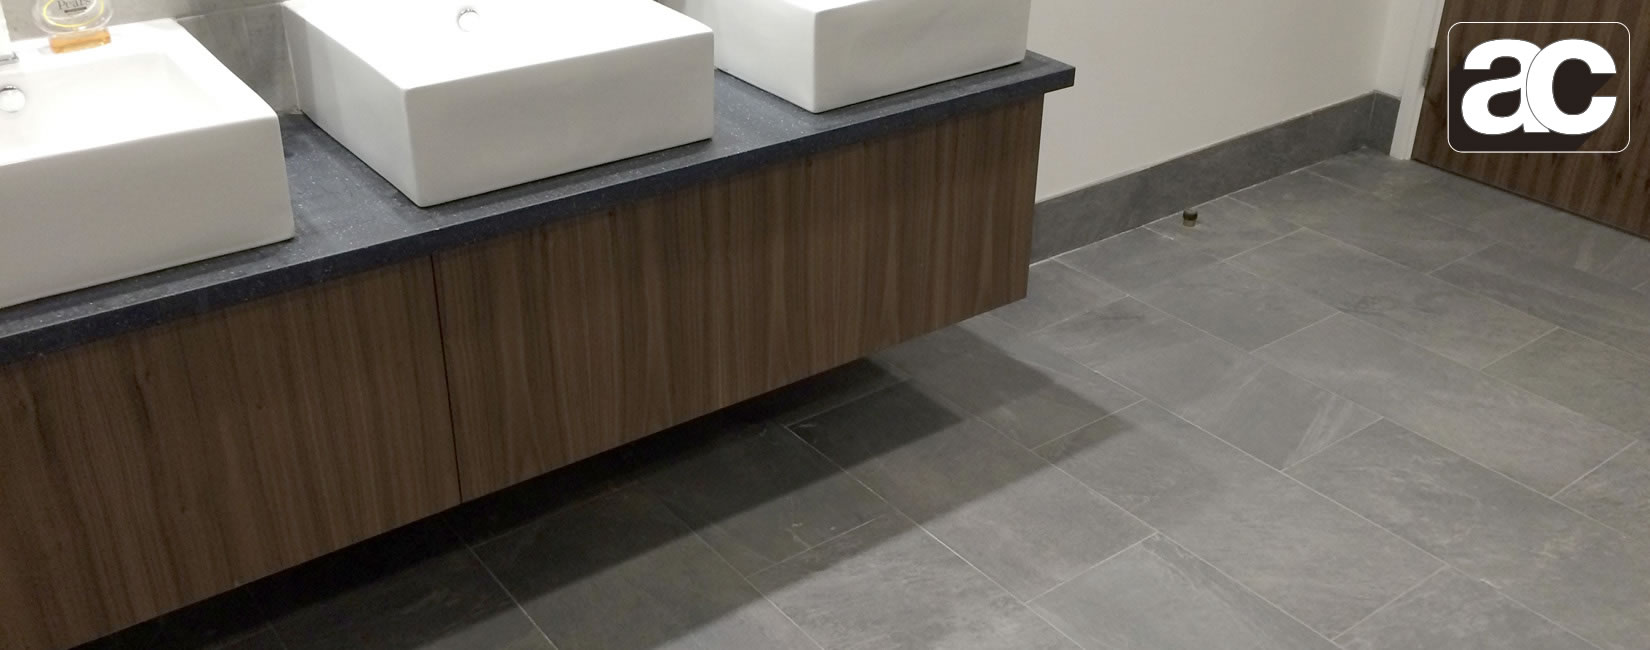 A Cumberlidge commercial flooring